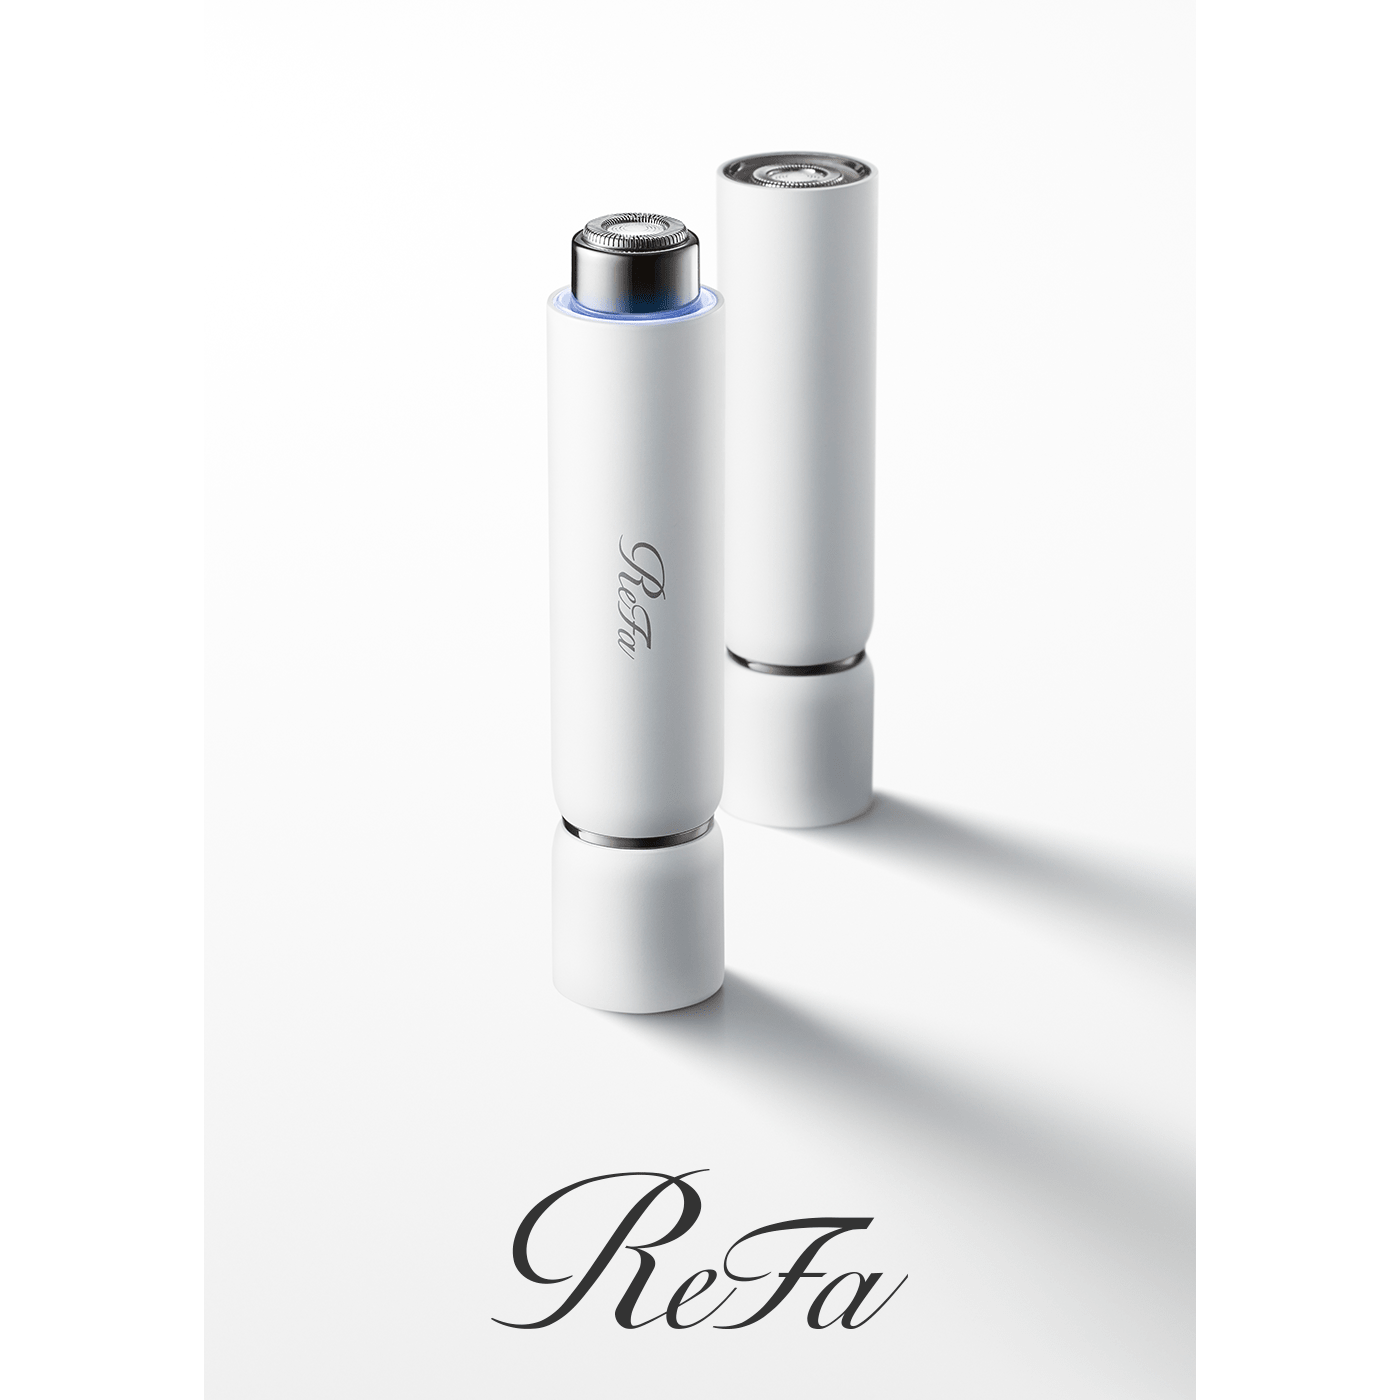 Introducing the ReFa SKIM SHAVER: an innovative shaving device that gently removes peach fuzz without damaging the skin.